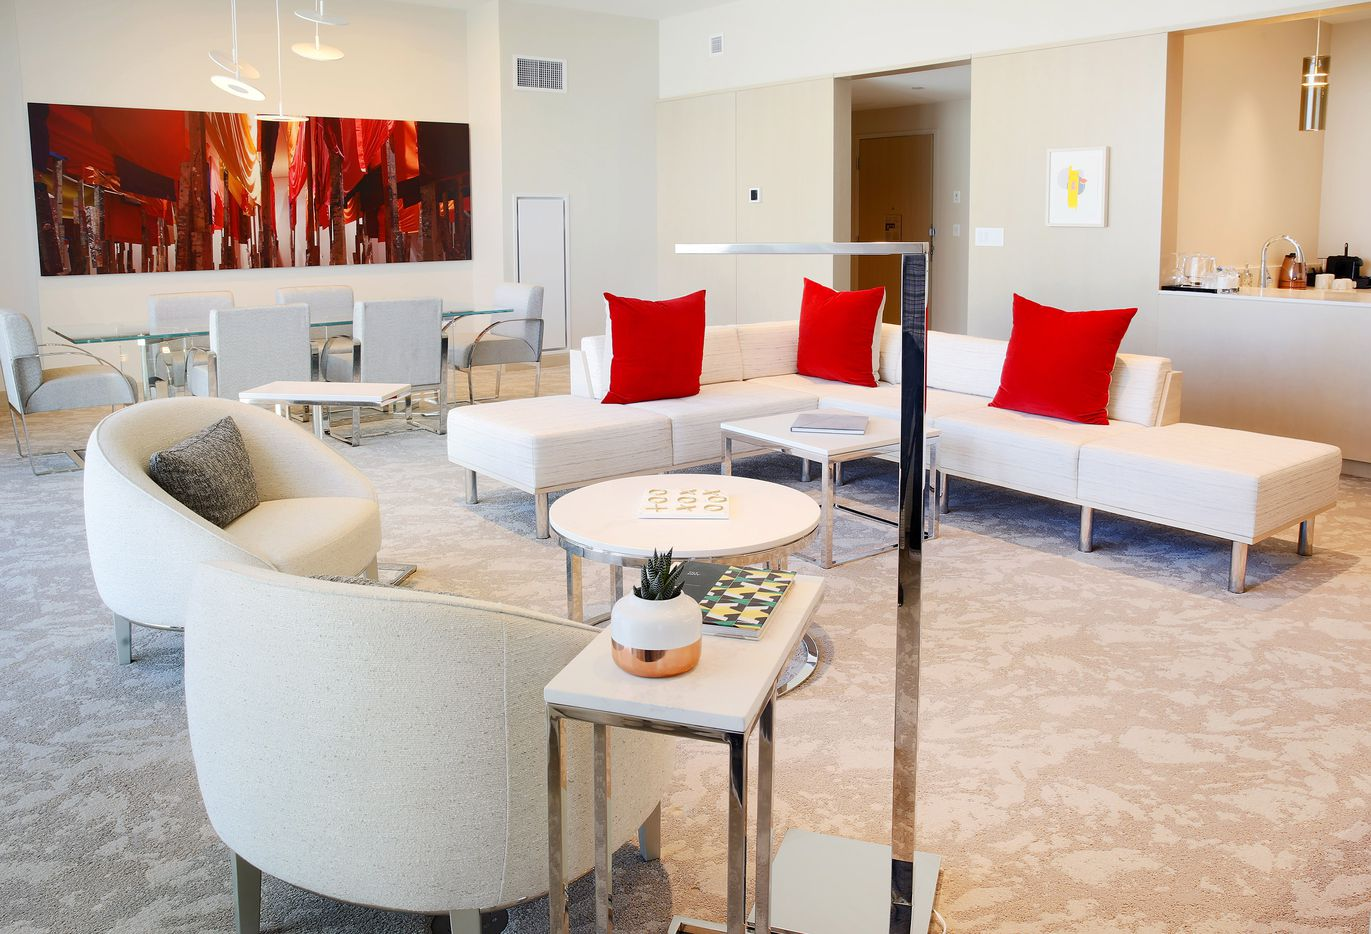 The Grand Finale Suite is pictured in the Hall Arts Hotel, Friday, February 21, 2020. The new hotel is in the Arts District of downtown Dallas.